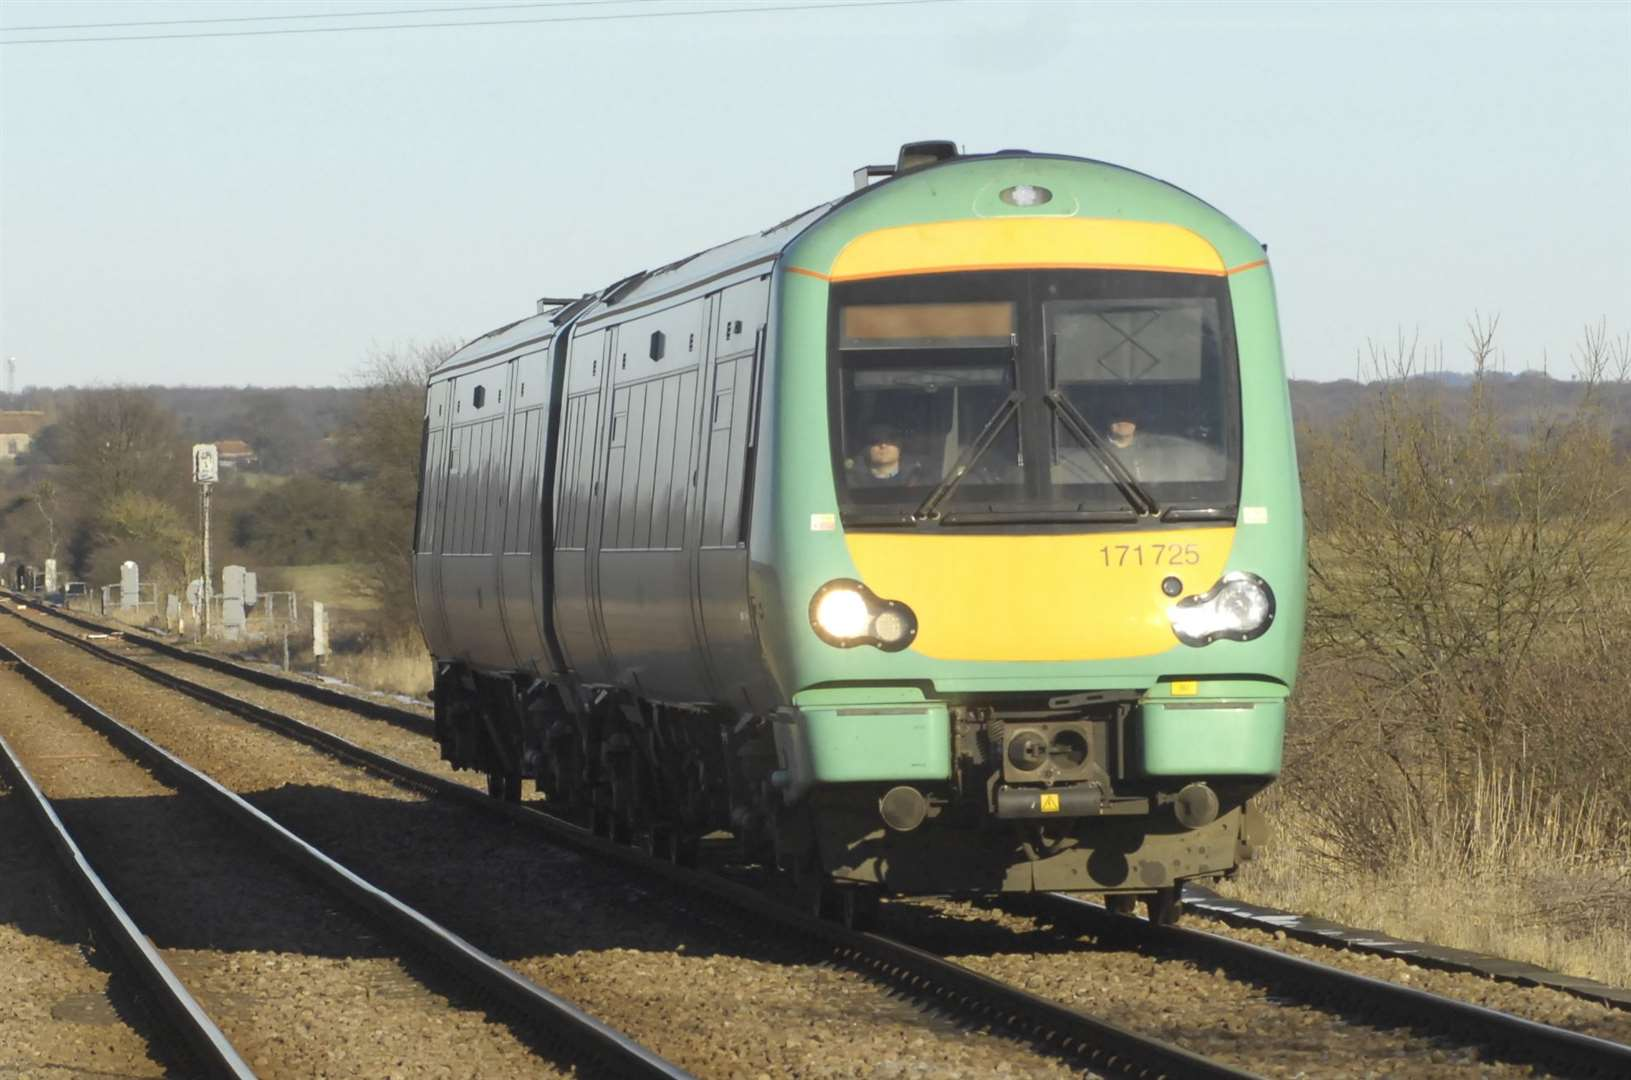 A Southern train came off the tracks at sidings in Tonbridge. Stock pic.